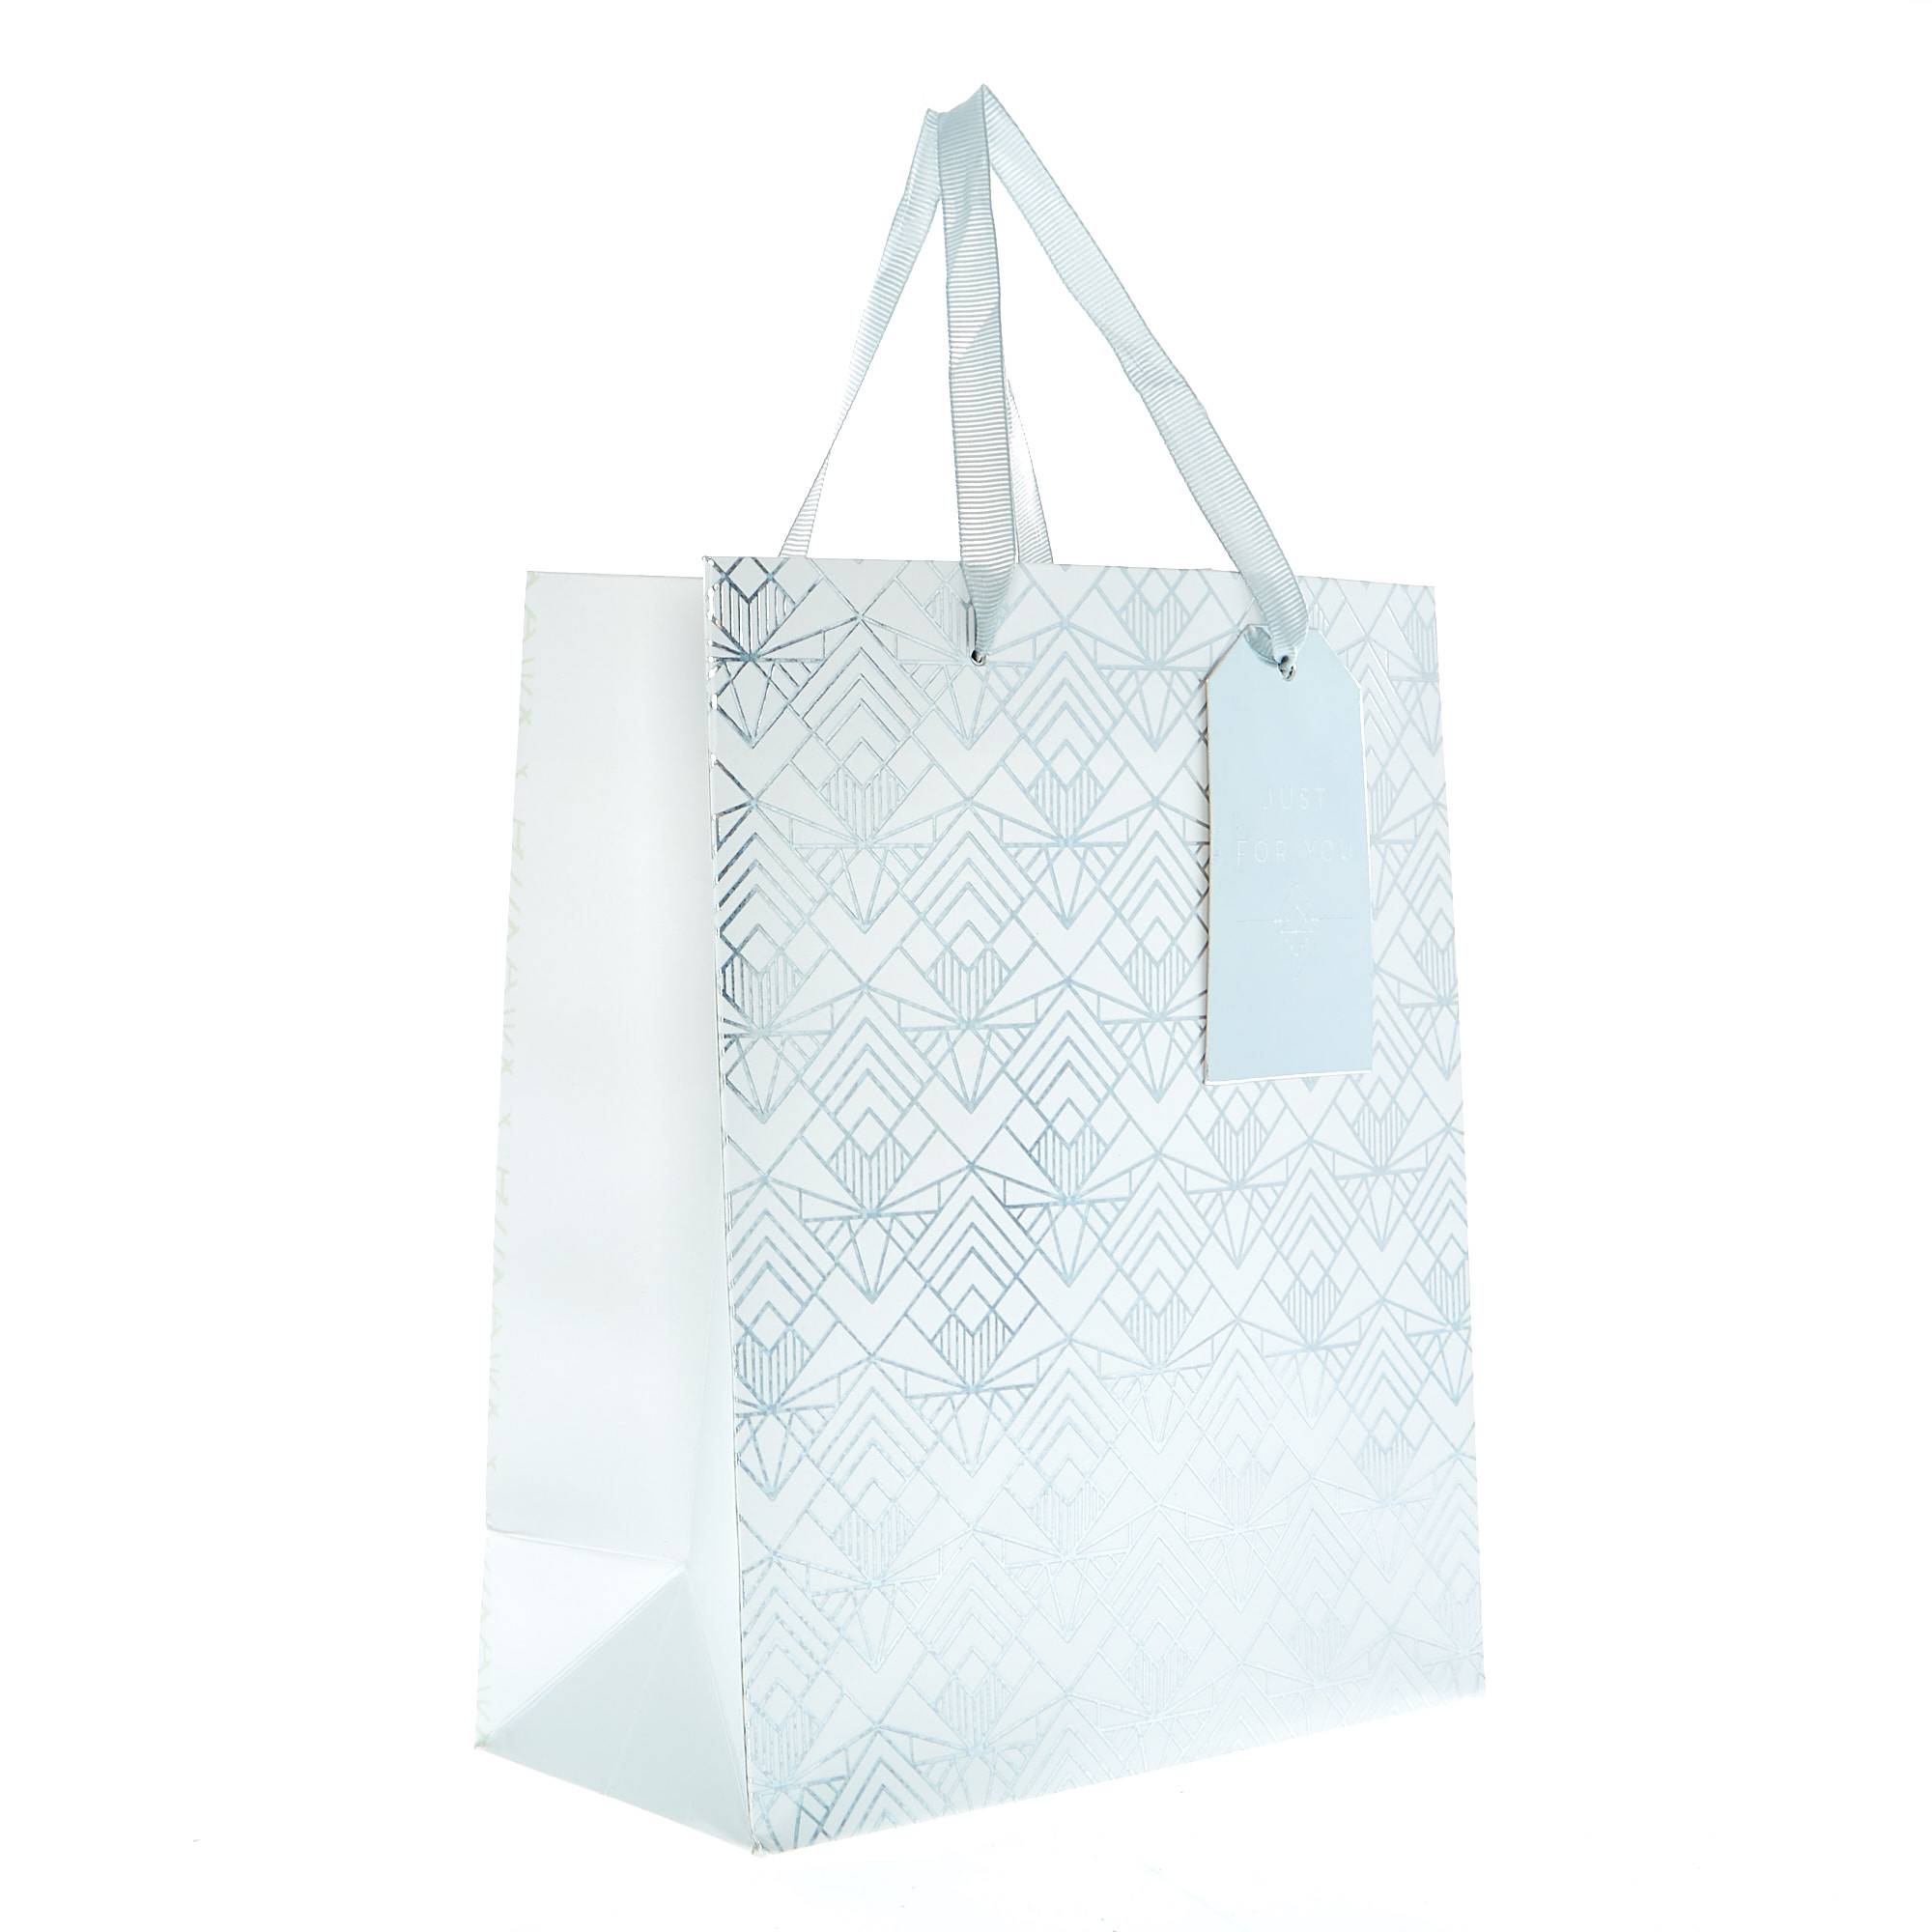 Small Portrait Gift Bag - White & Silver Damask